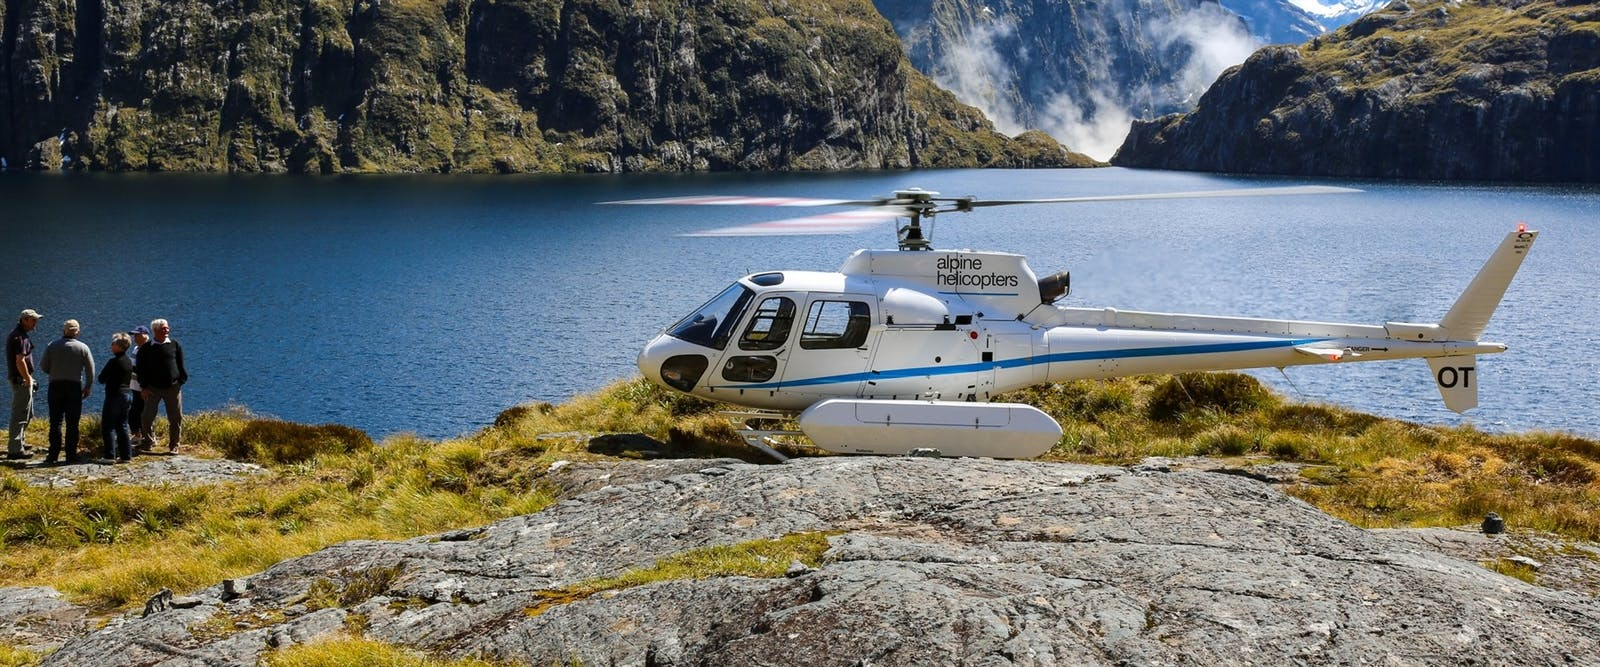 Helicopter Experience at Minaret Station, Wanaka